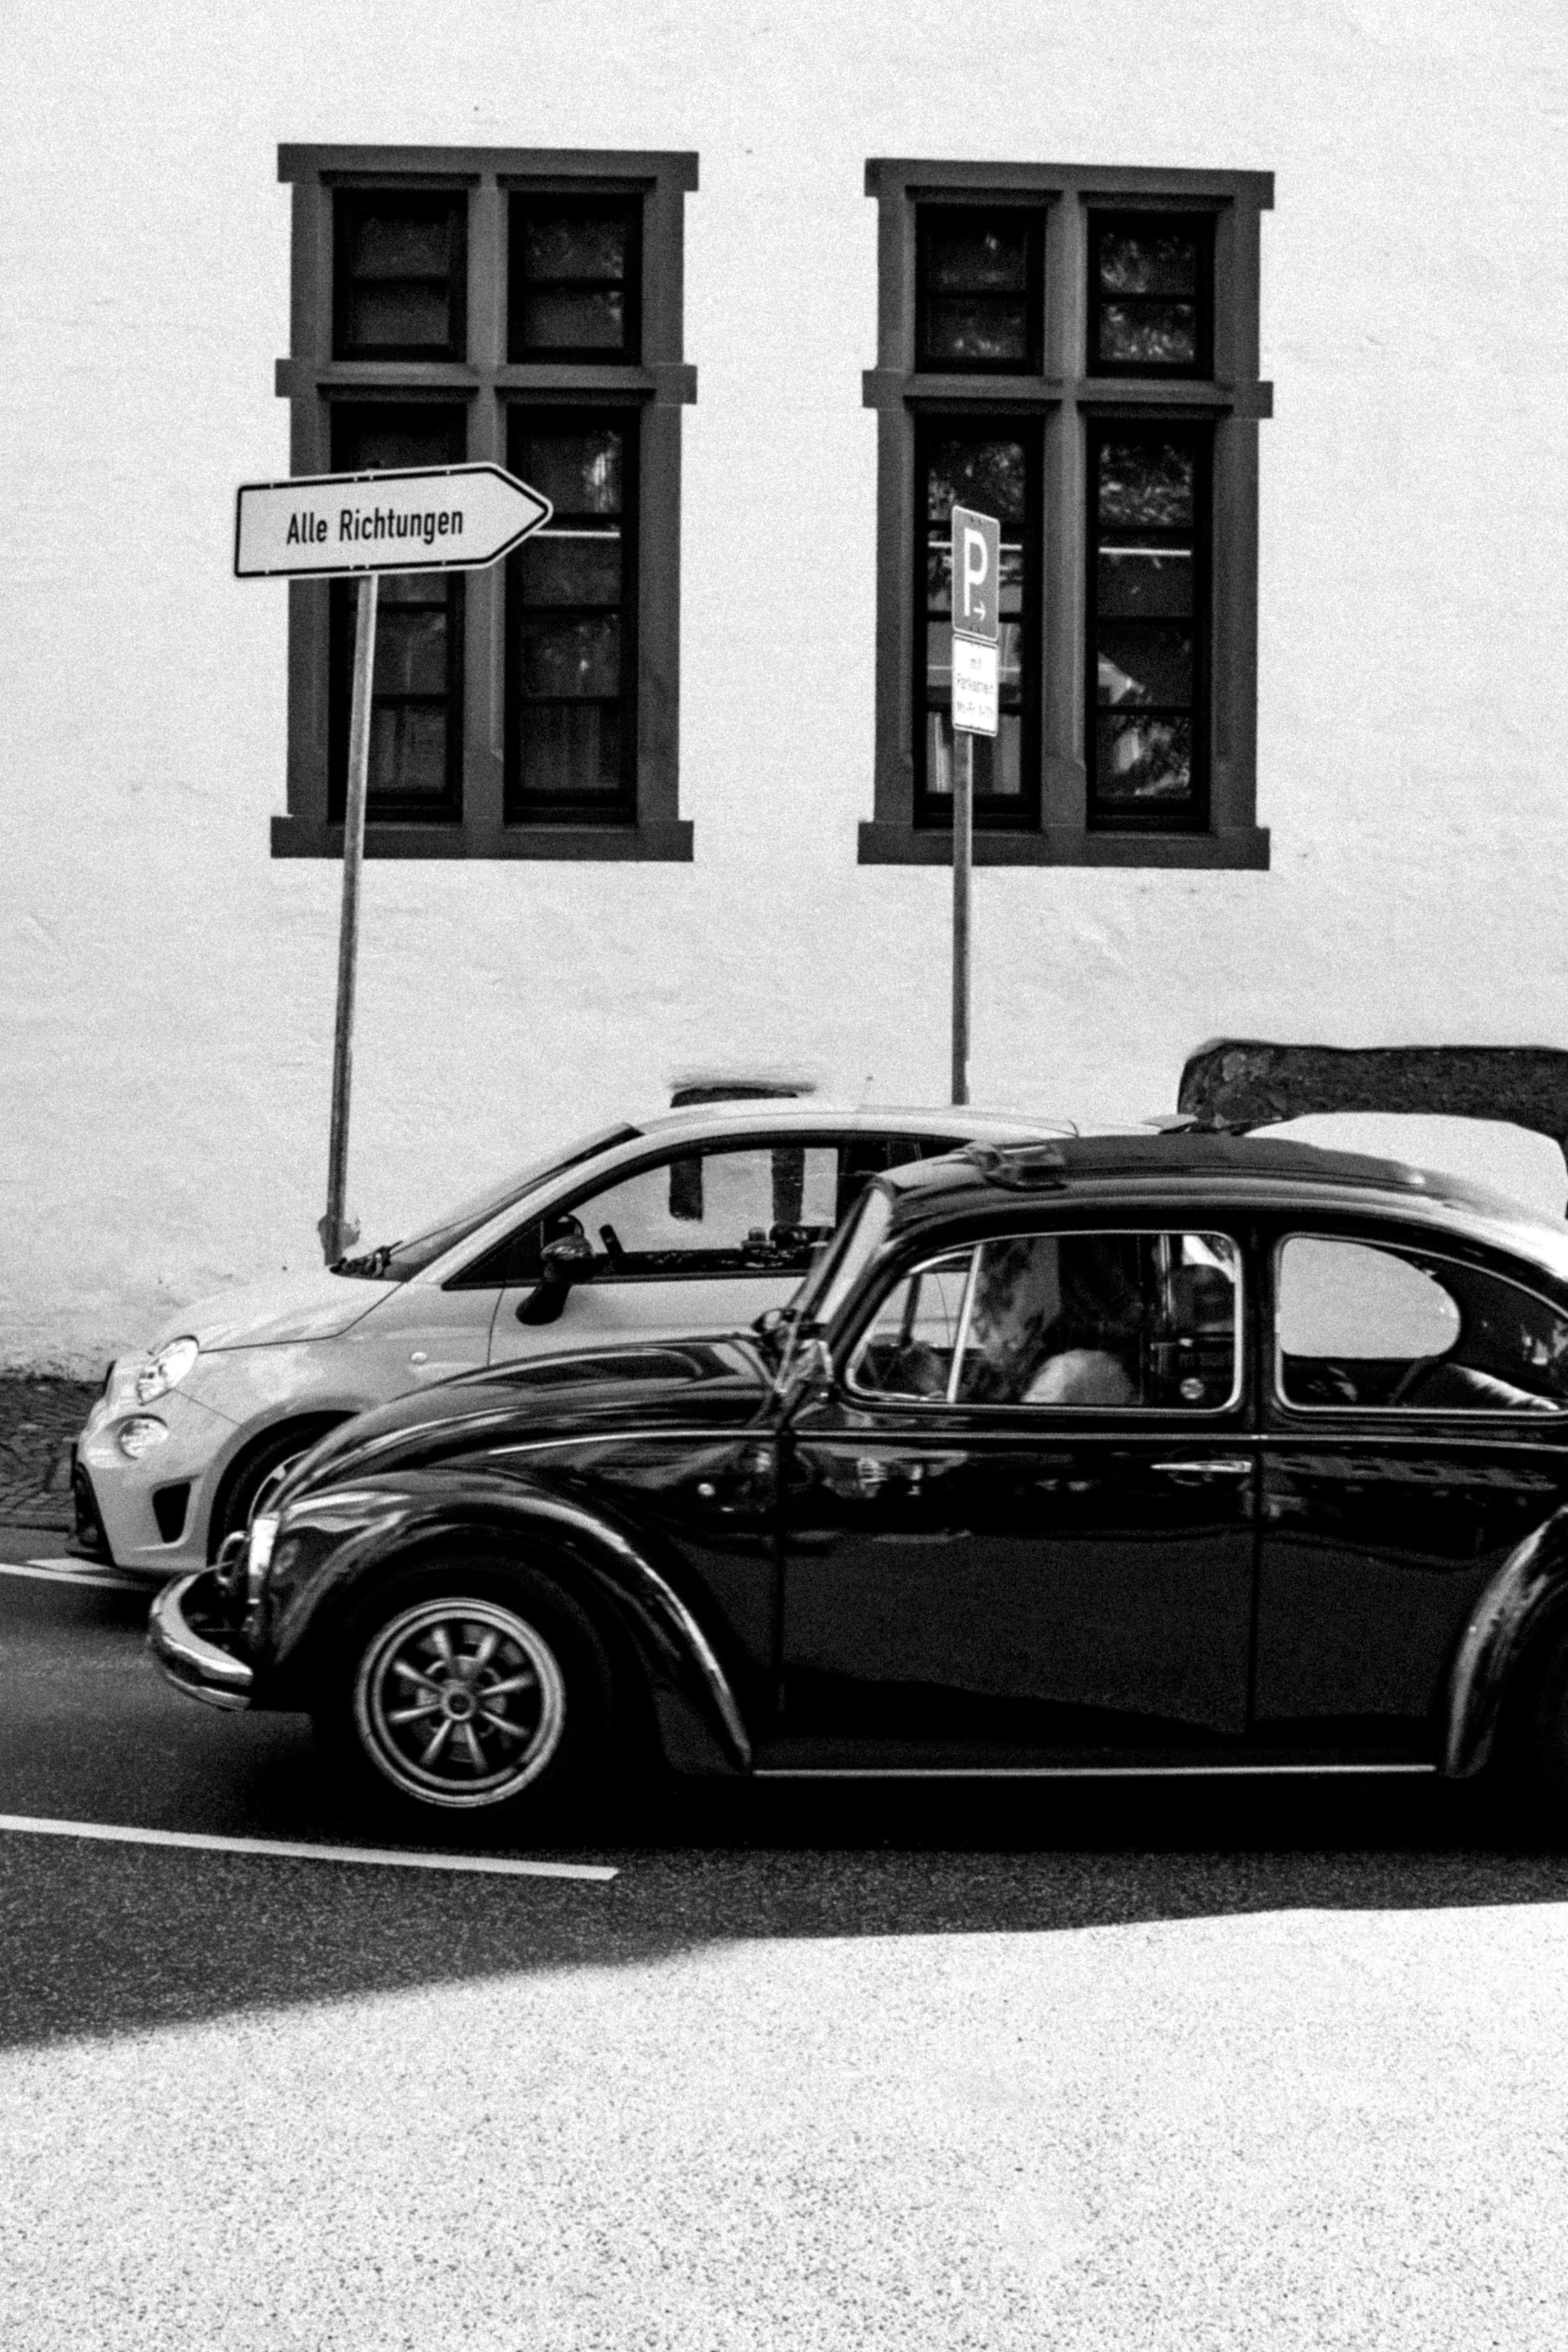 OLD AND NEW HOT HATCH, FRANKFURT